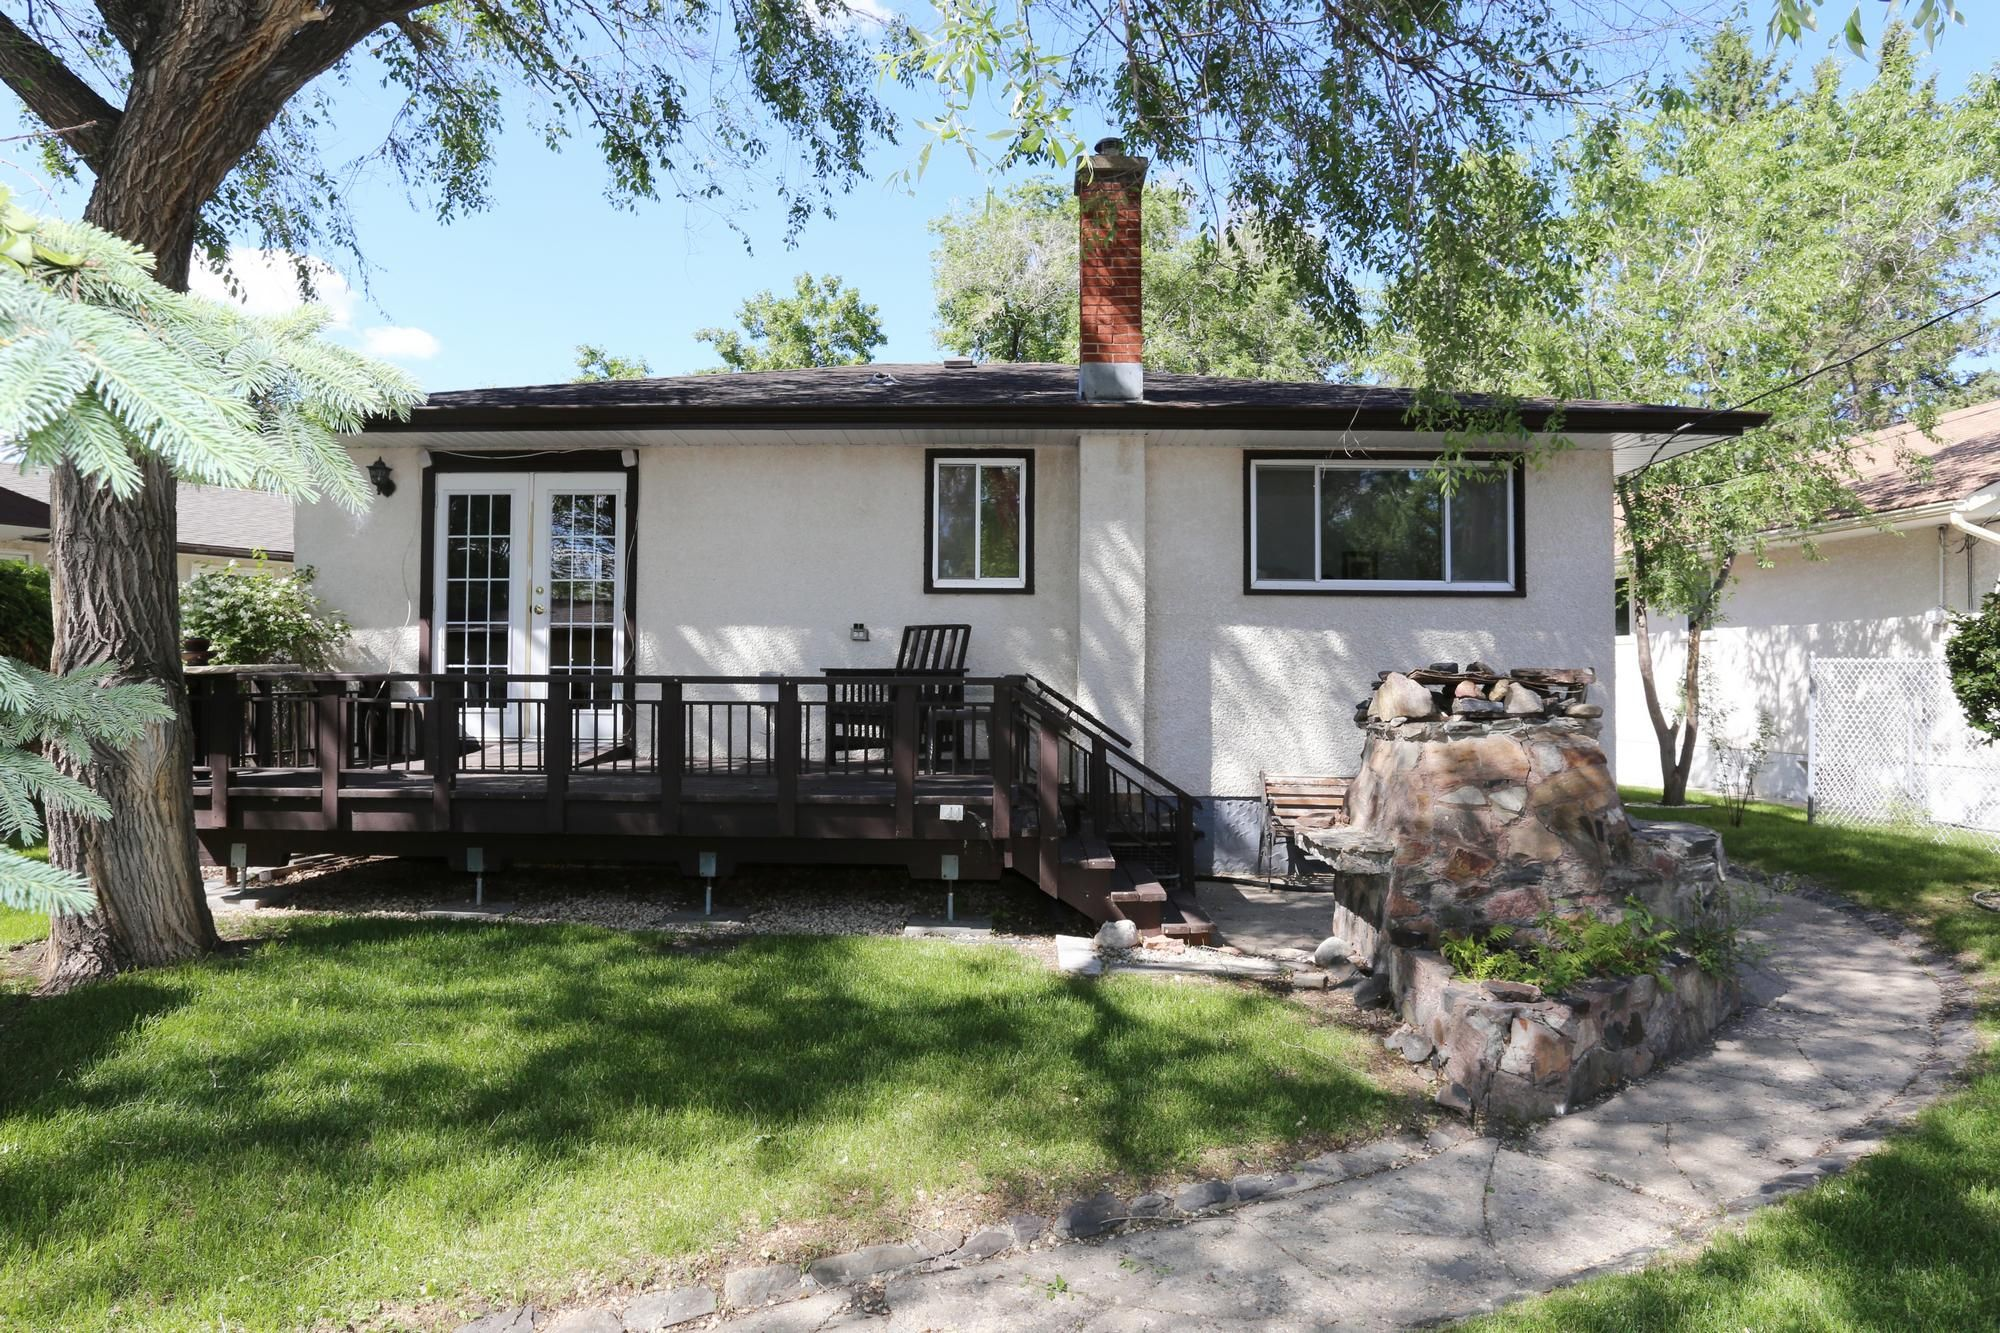 Photo 3: Photos: 1320 Valour Road in Winnipeg: West End Single Family Detached for sale (5C)  : MLS®# 1816744